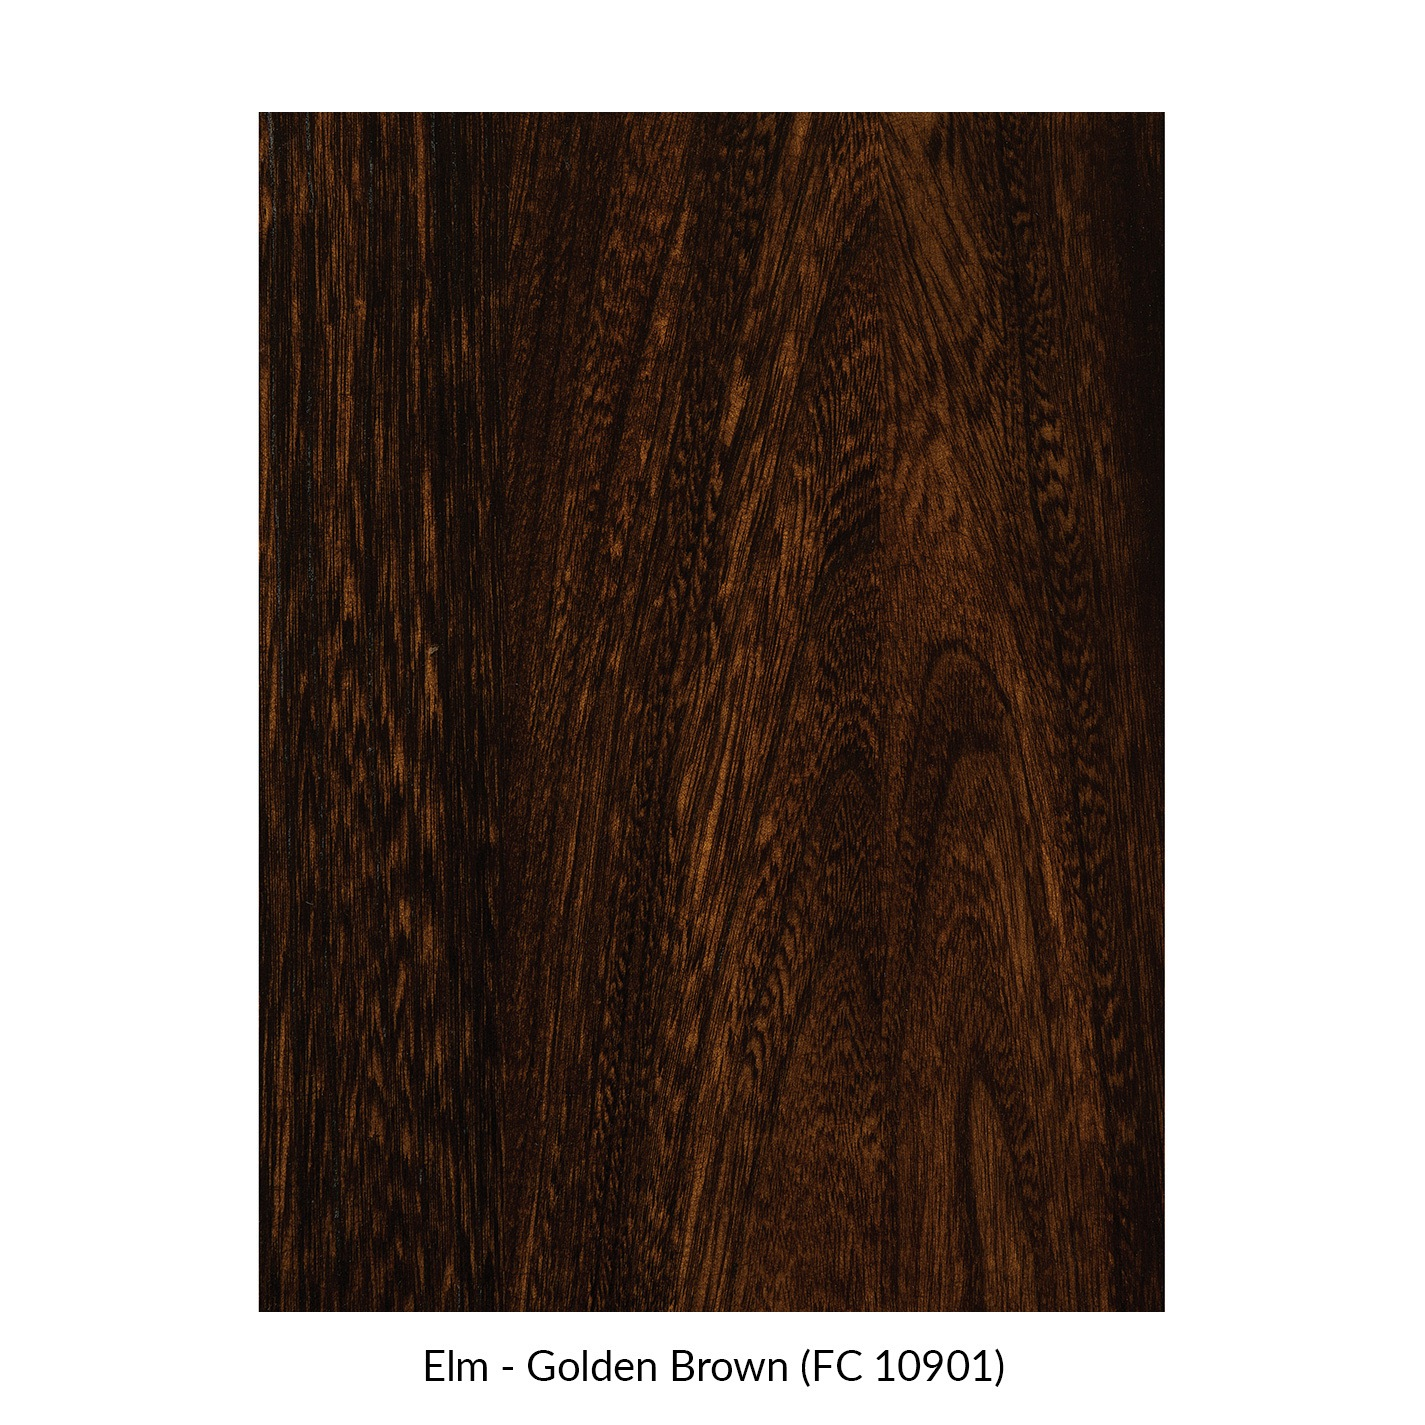 spectrum-elm-golden-brown-fc-10901.jpg